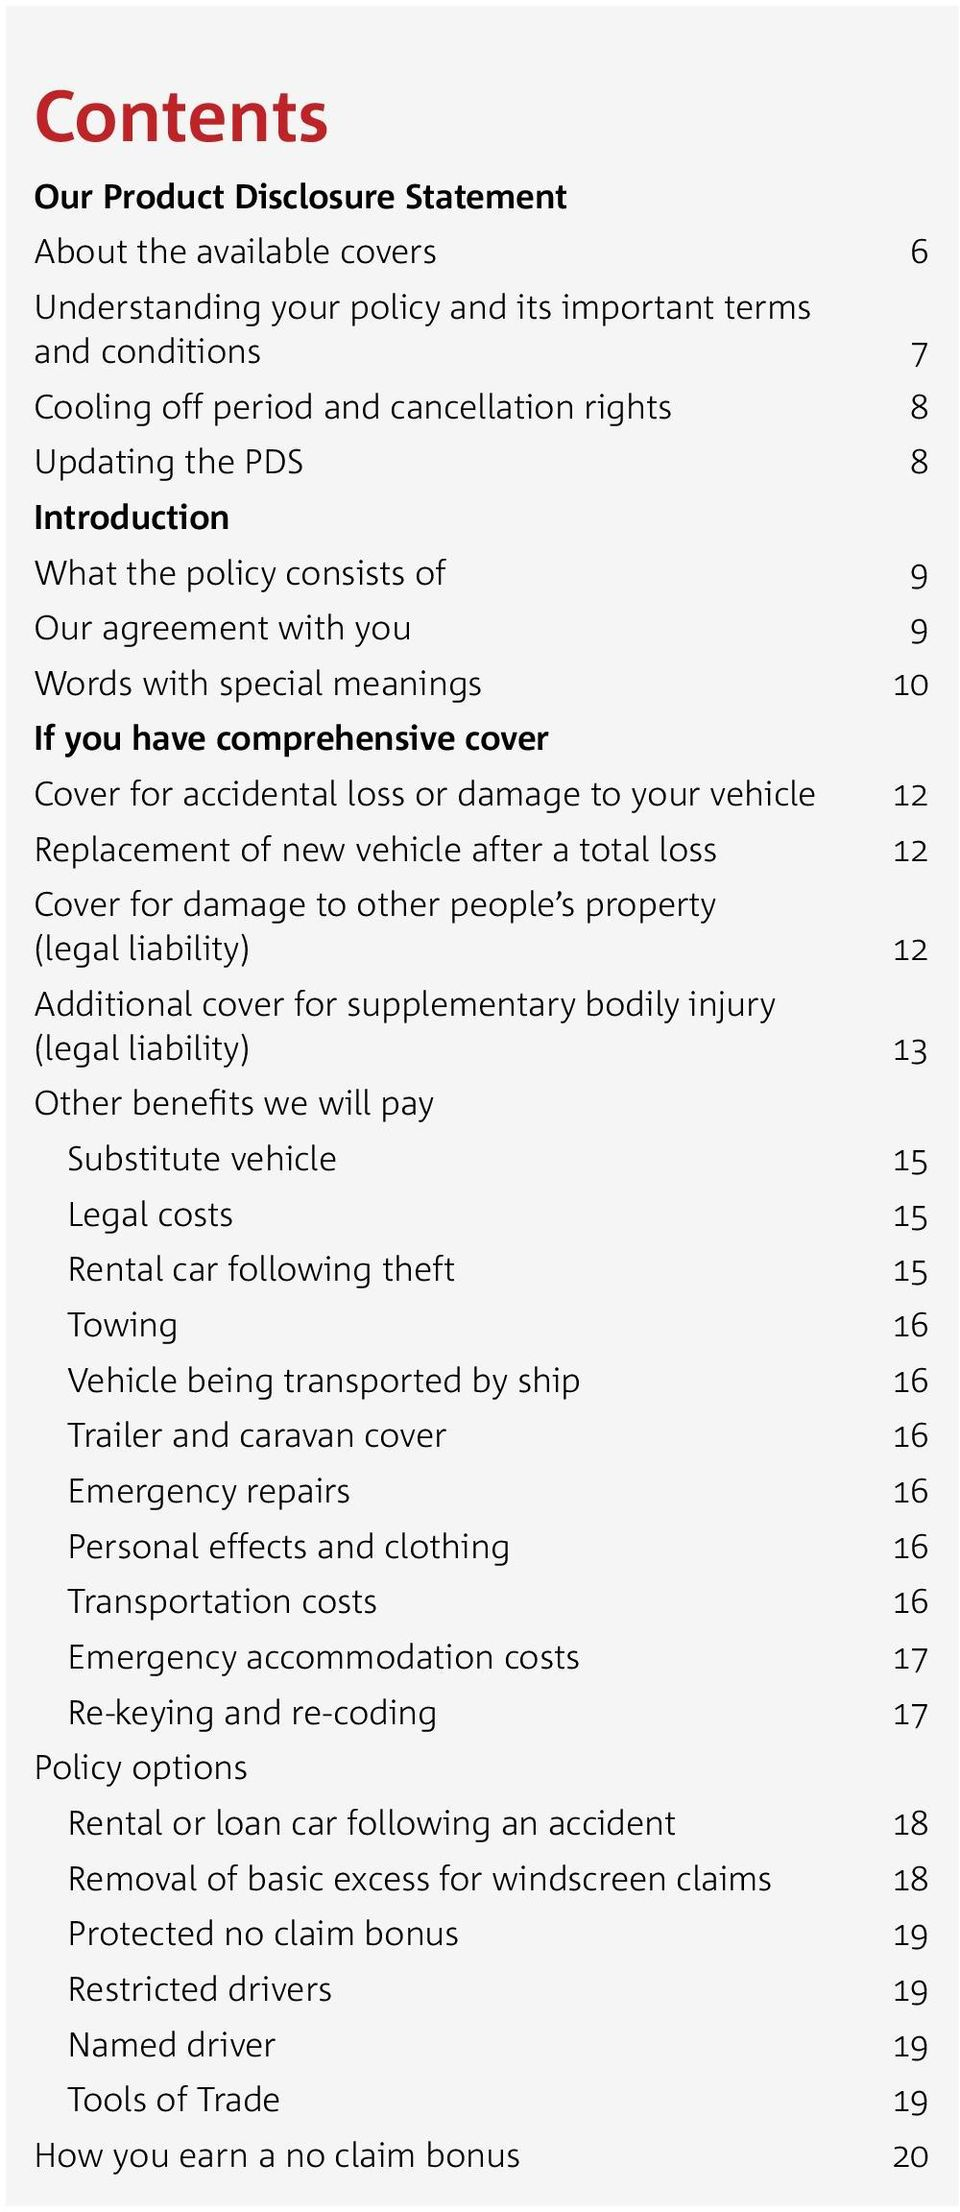 of new vehicle after a total loss 12 Cover for damage to other people s property (legal liability) 12 Additional cover for supplementary bodily injury (legal liability) 13 Other benefits we will pay